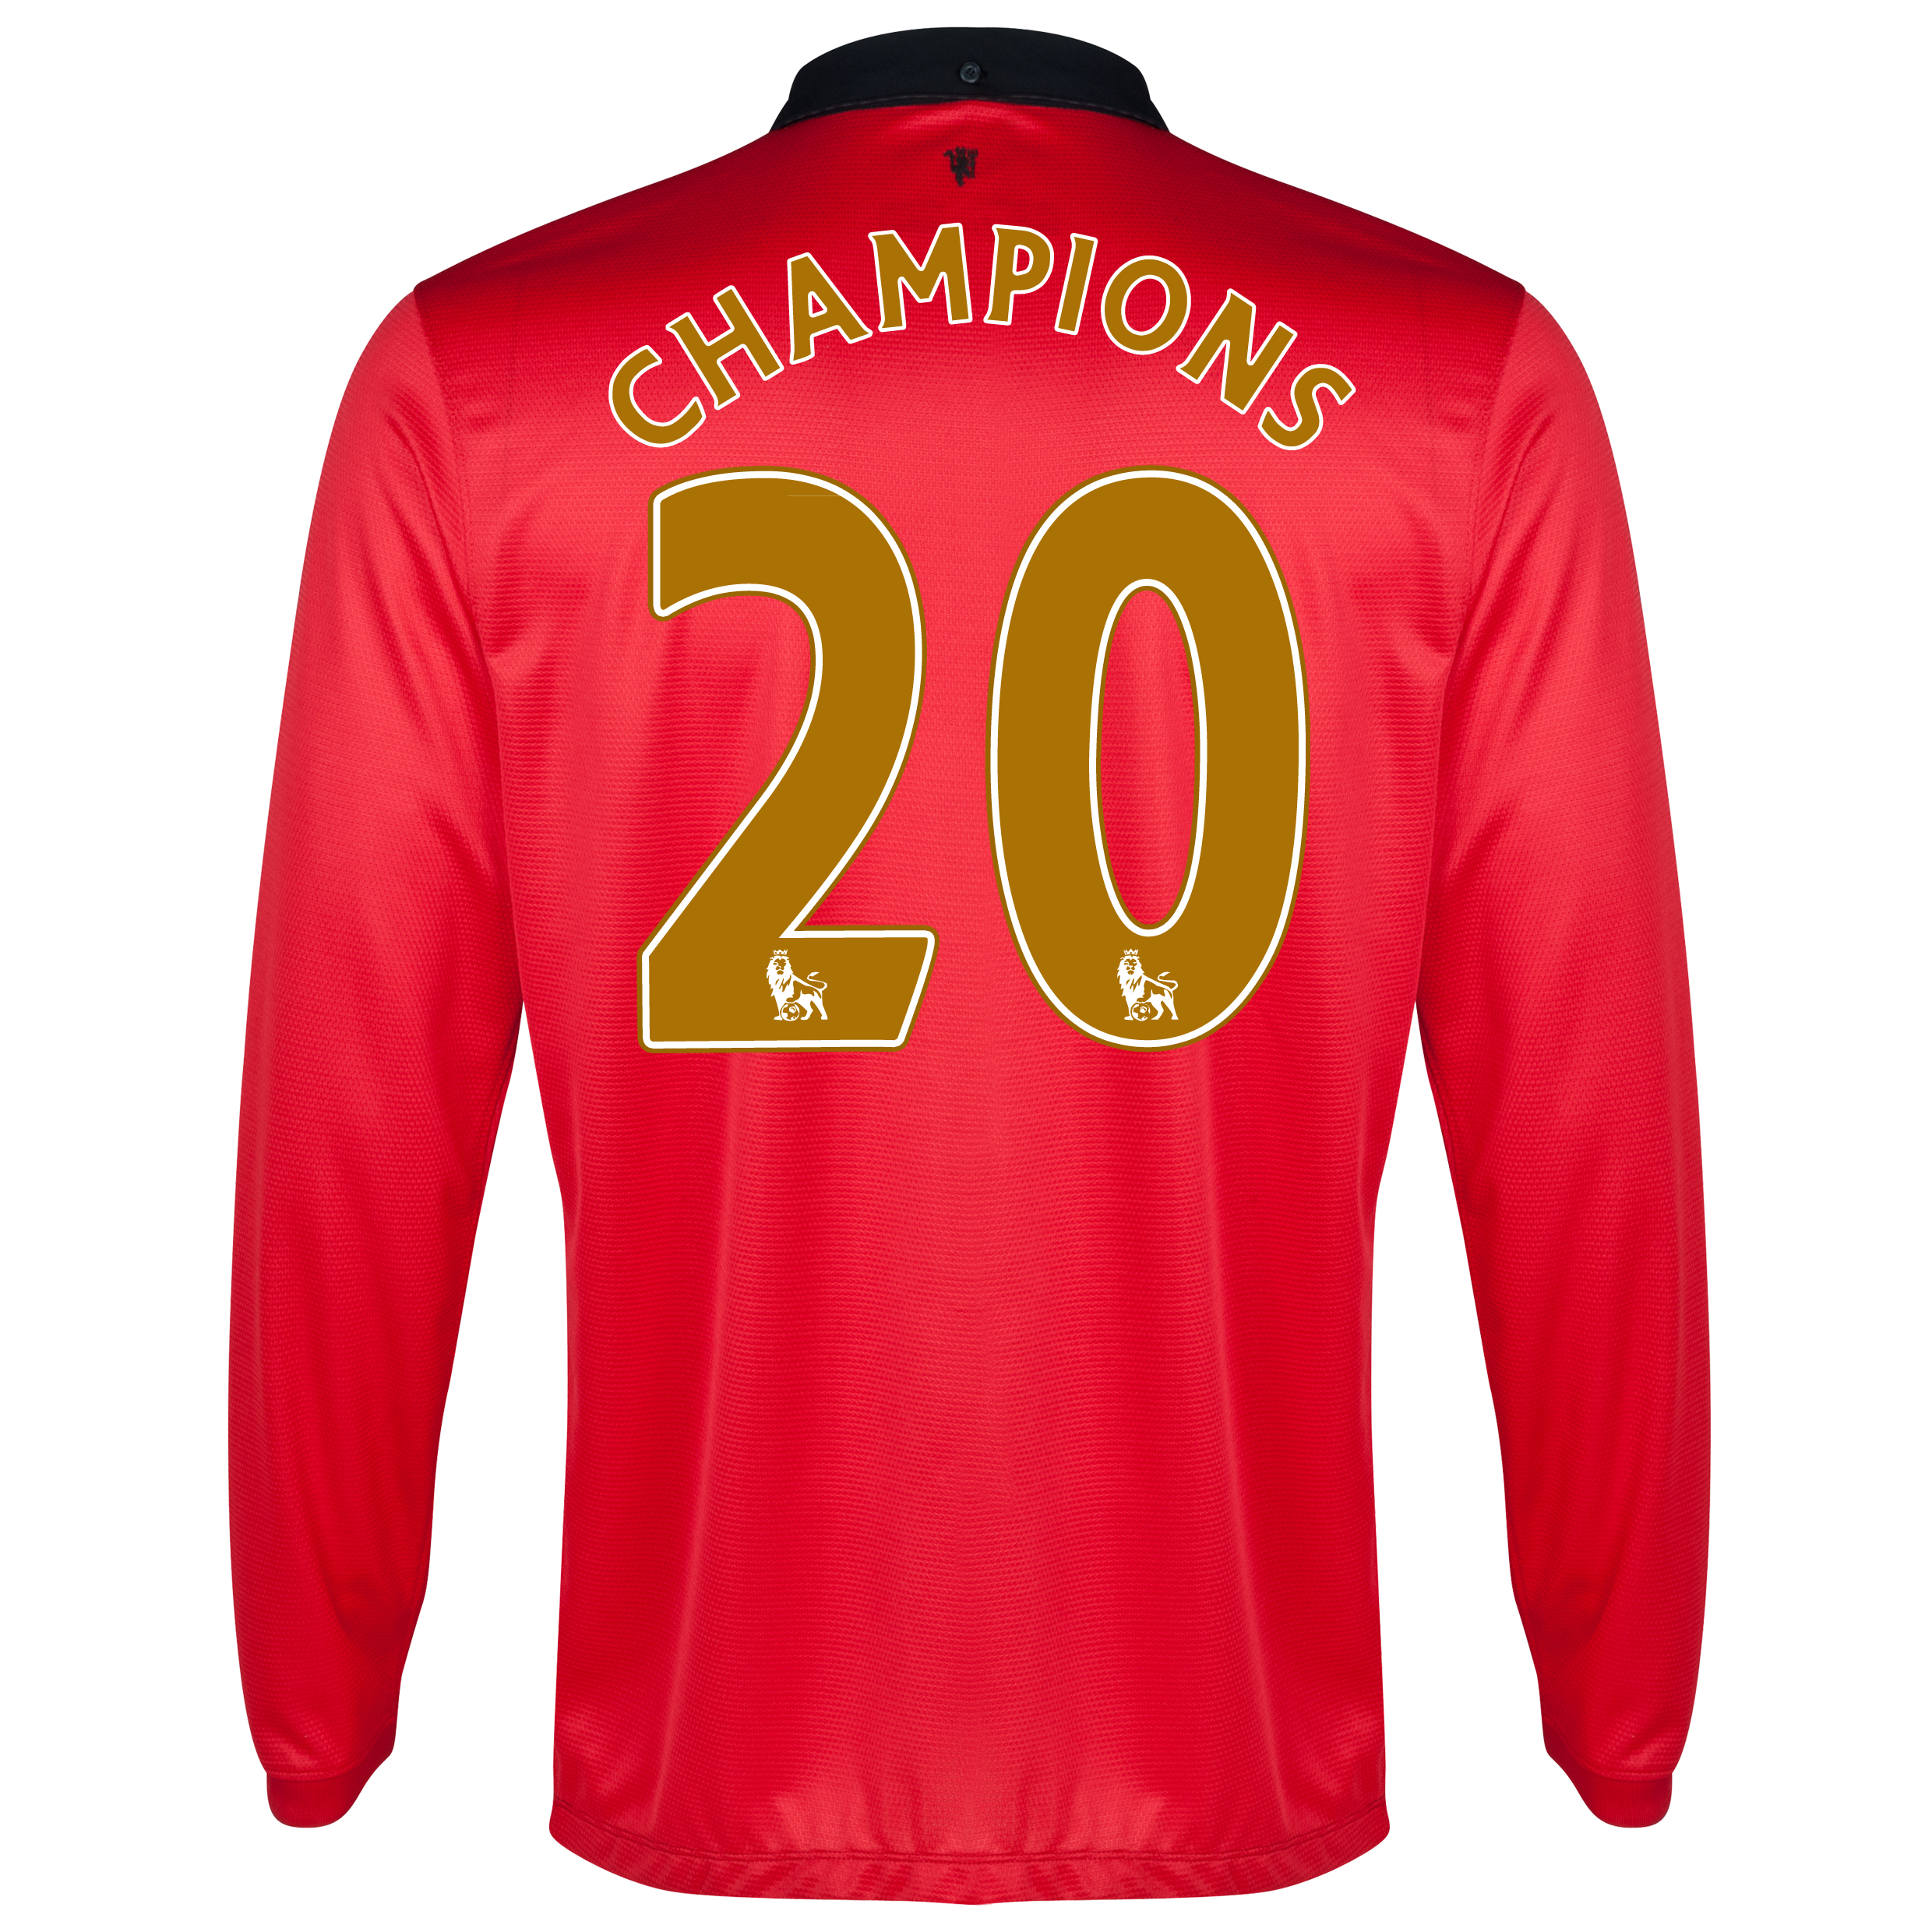 Manchester United Home Shirt 2013/14 - Long Sleeved - Kids with Champions 20 printing